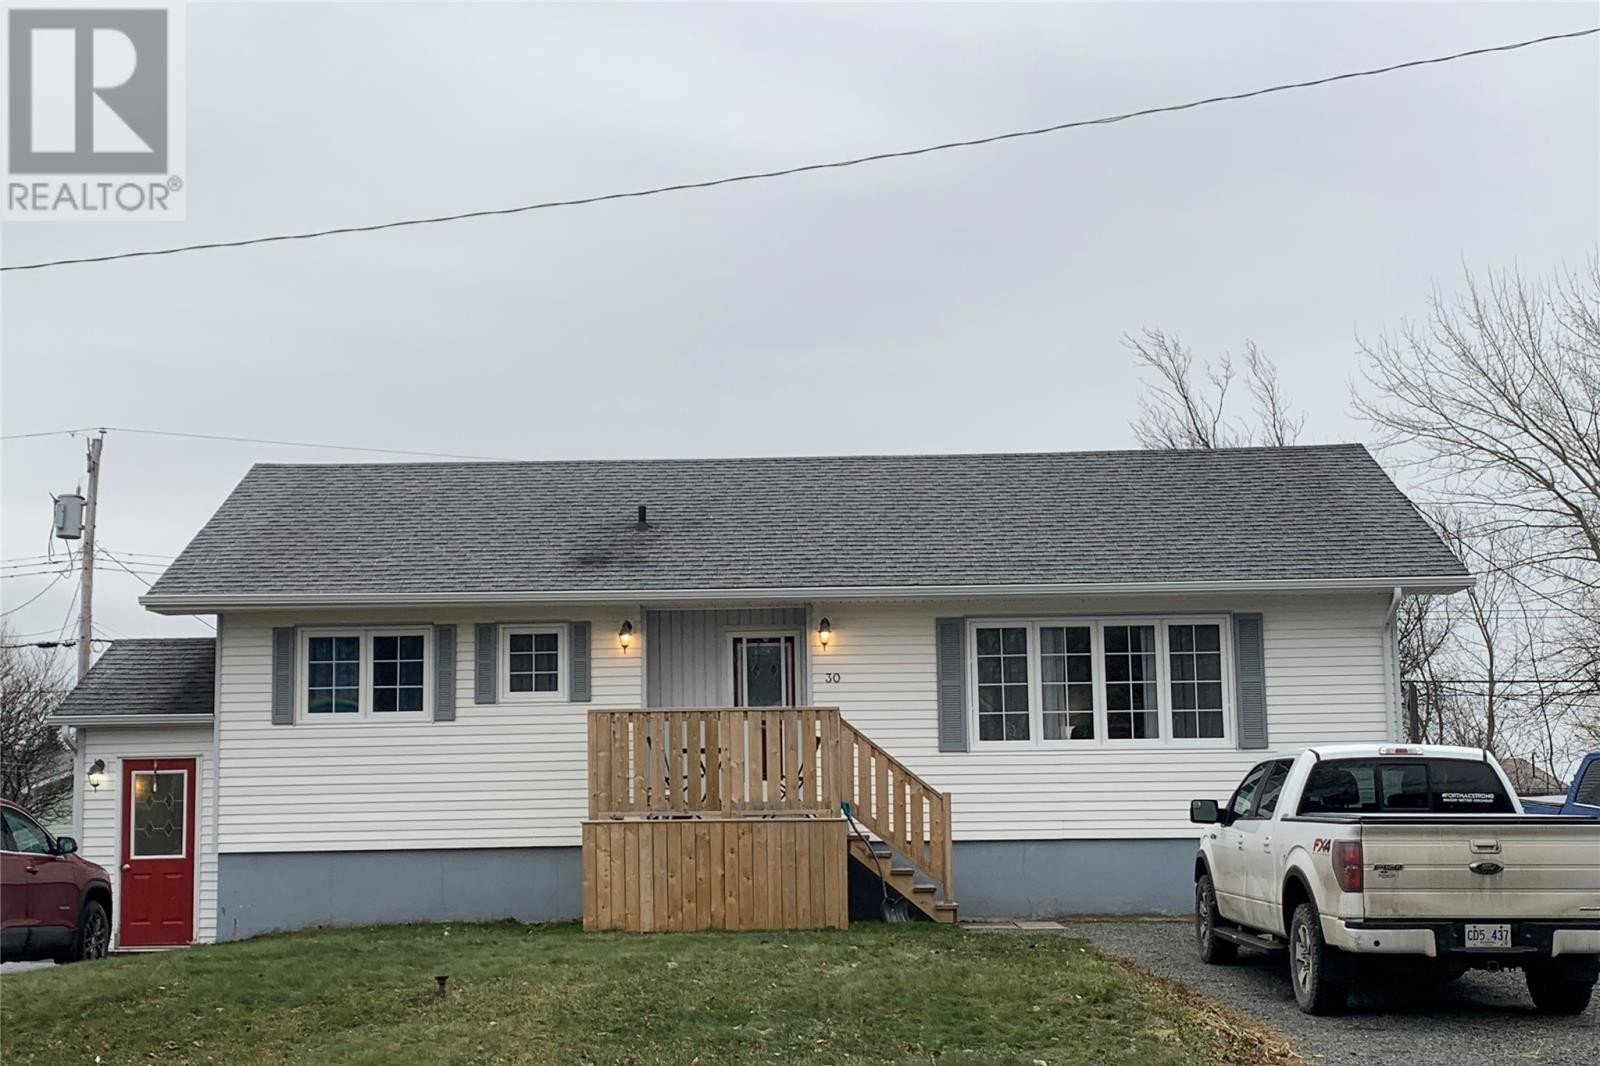 House for sale at 30 Oneil Ave Grand Falls - Windsor Newfoundland - MLS: 1223562